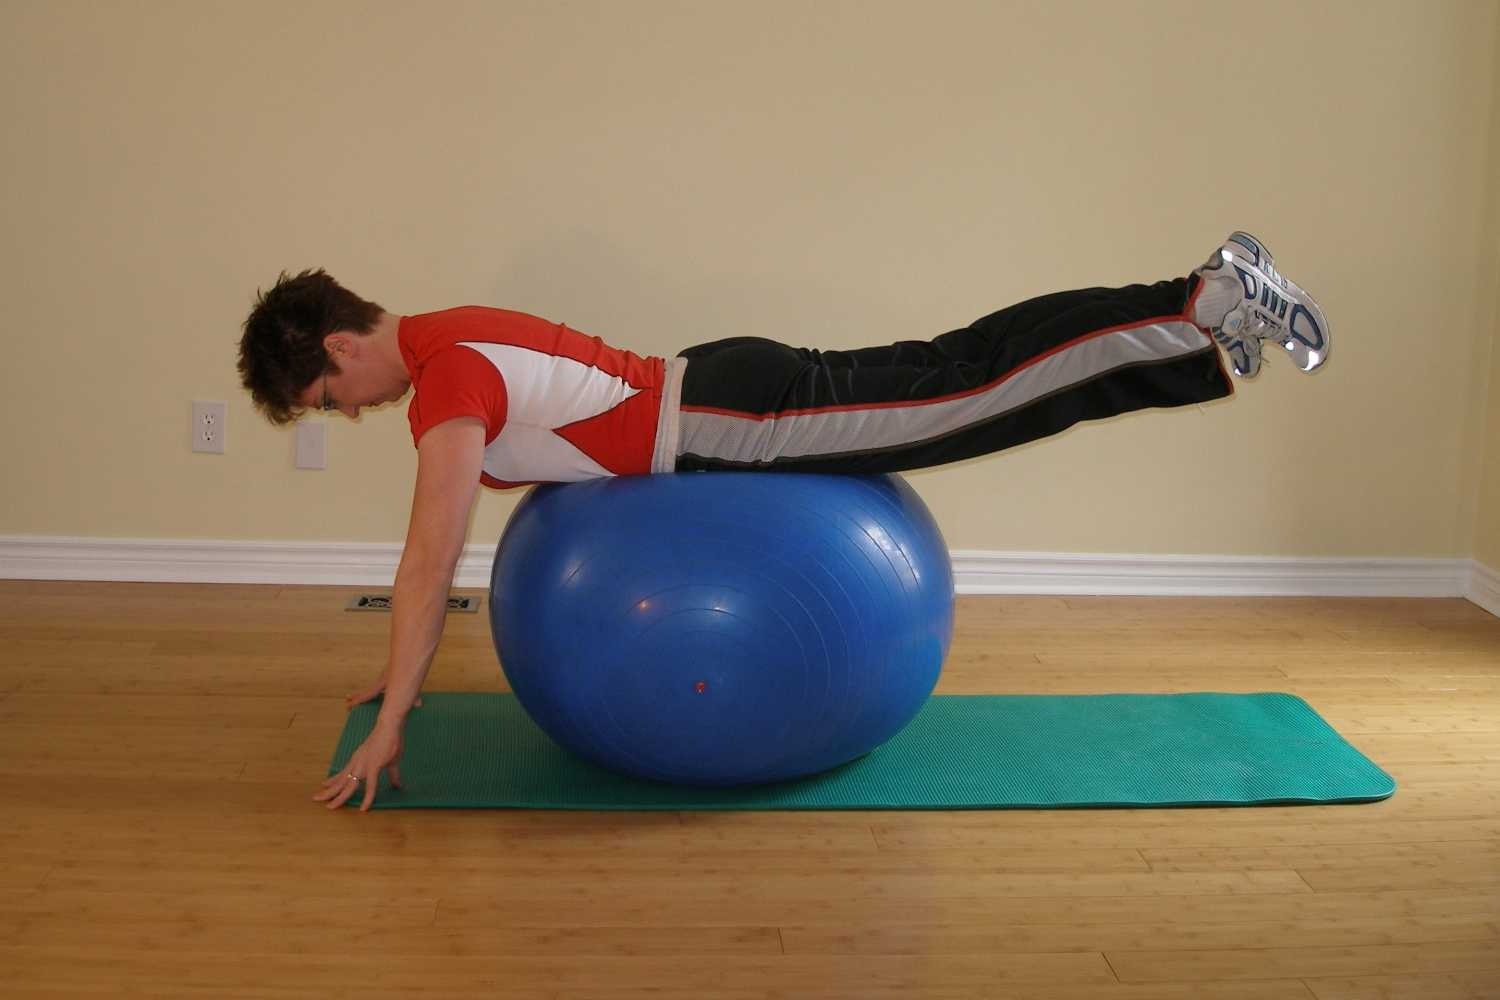 pike over the exercise ball finish